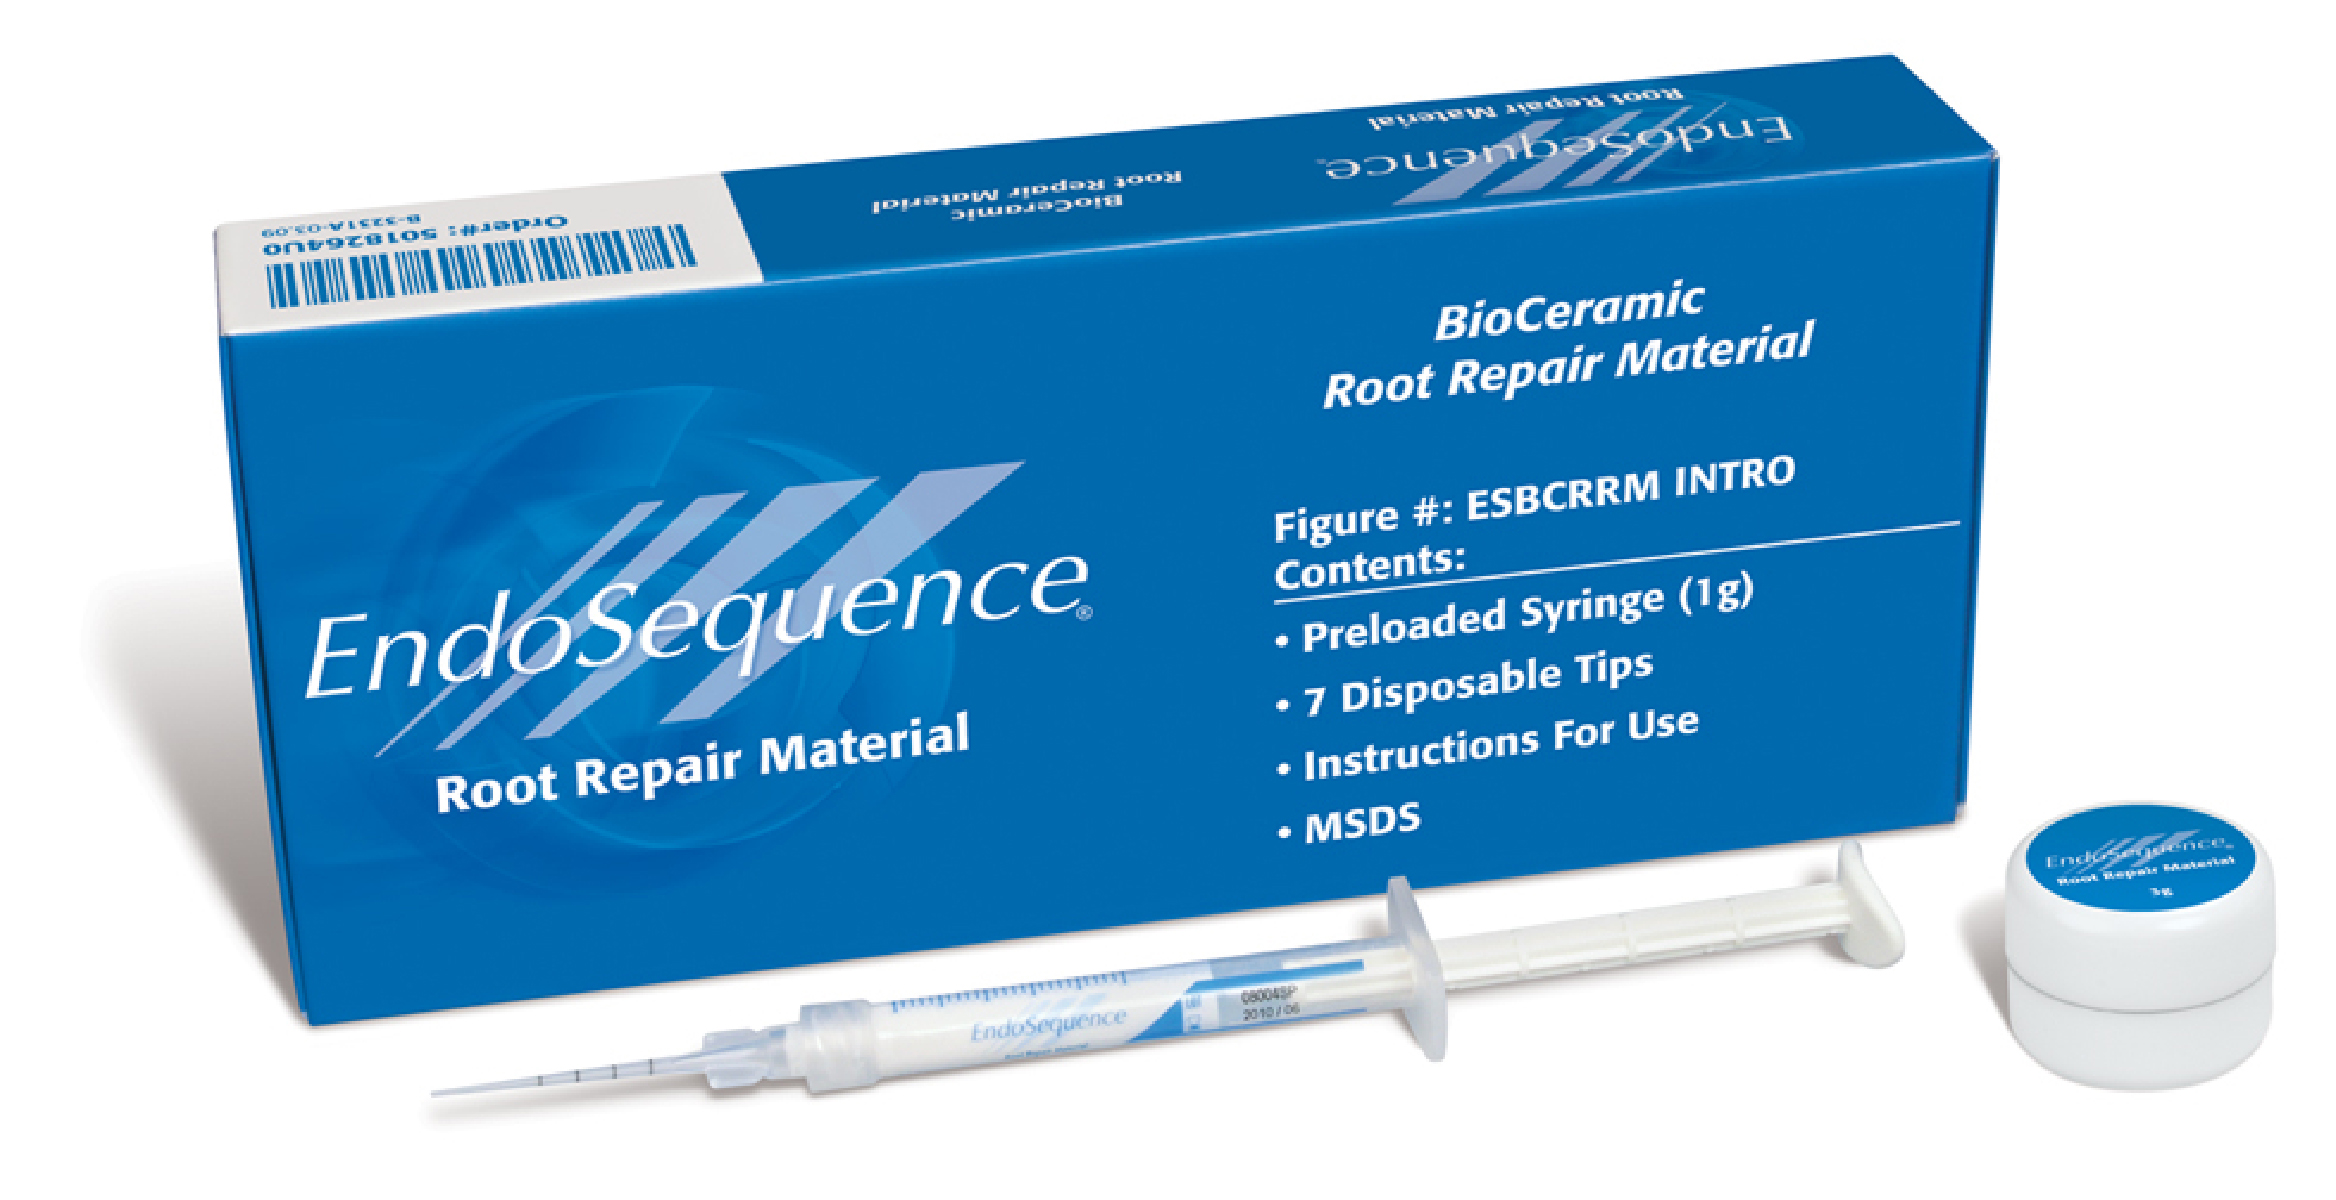 EndoSequence Root Repair Material